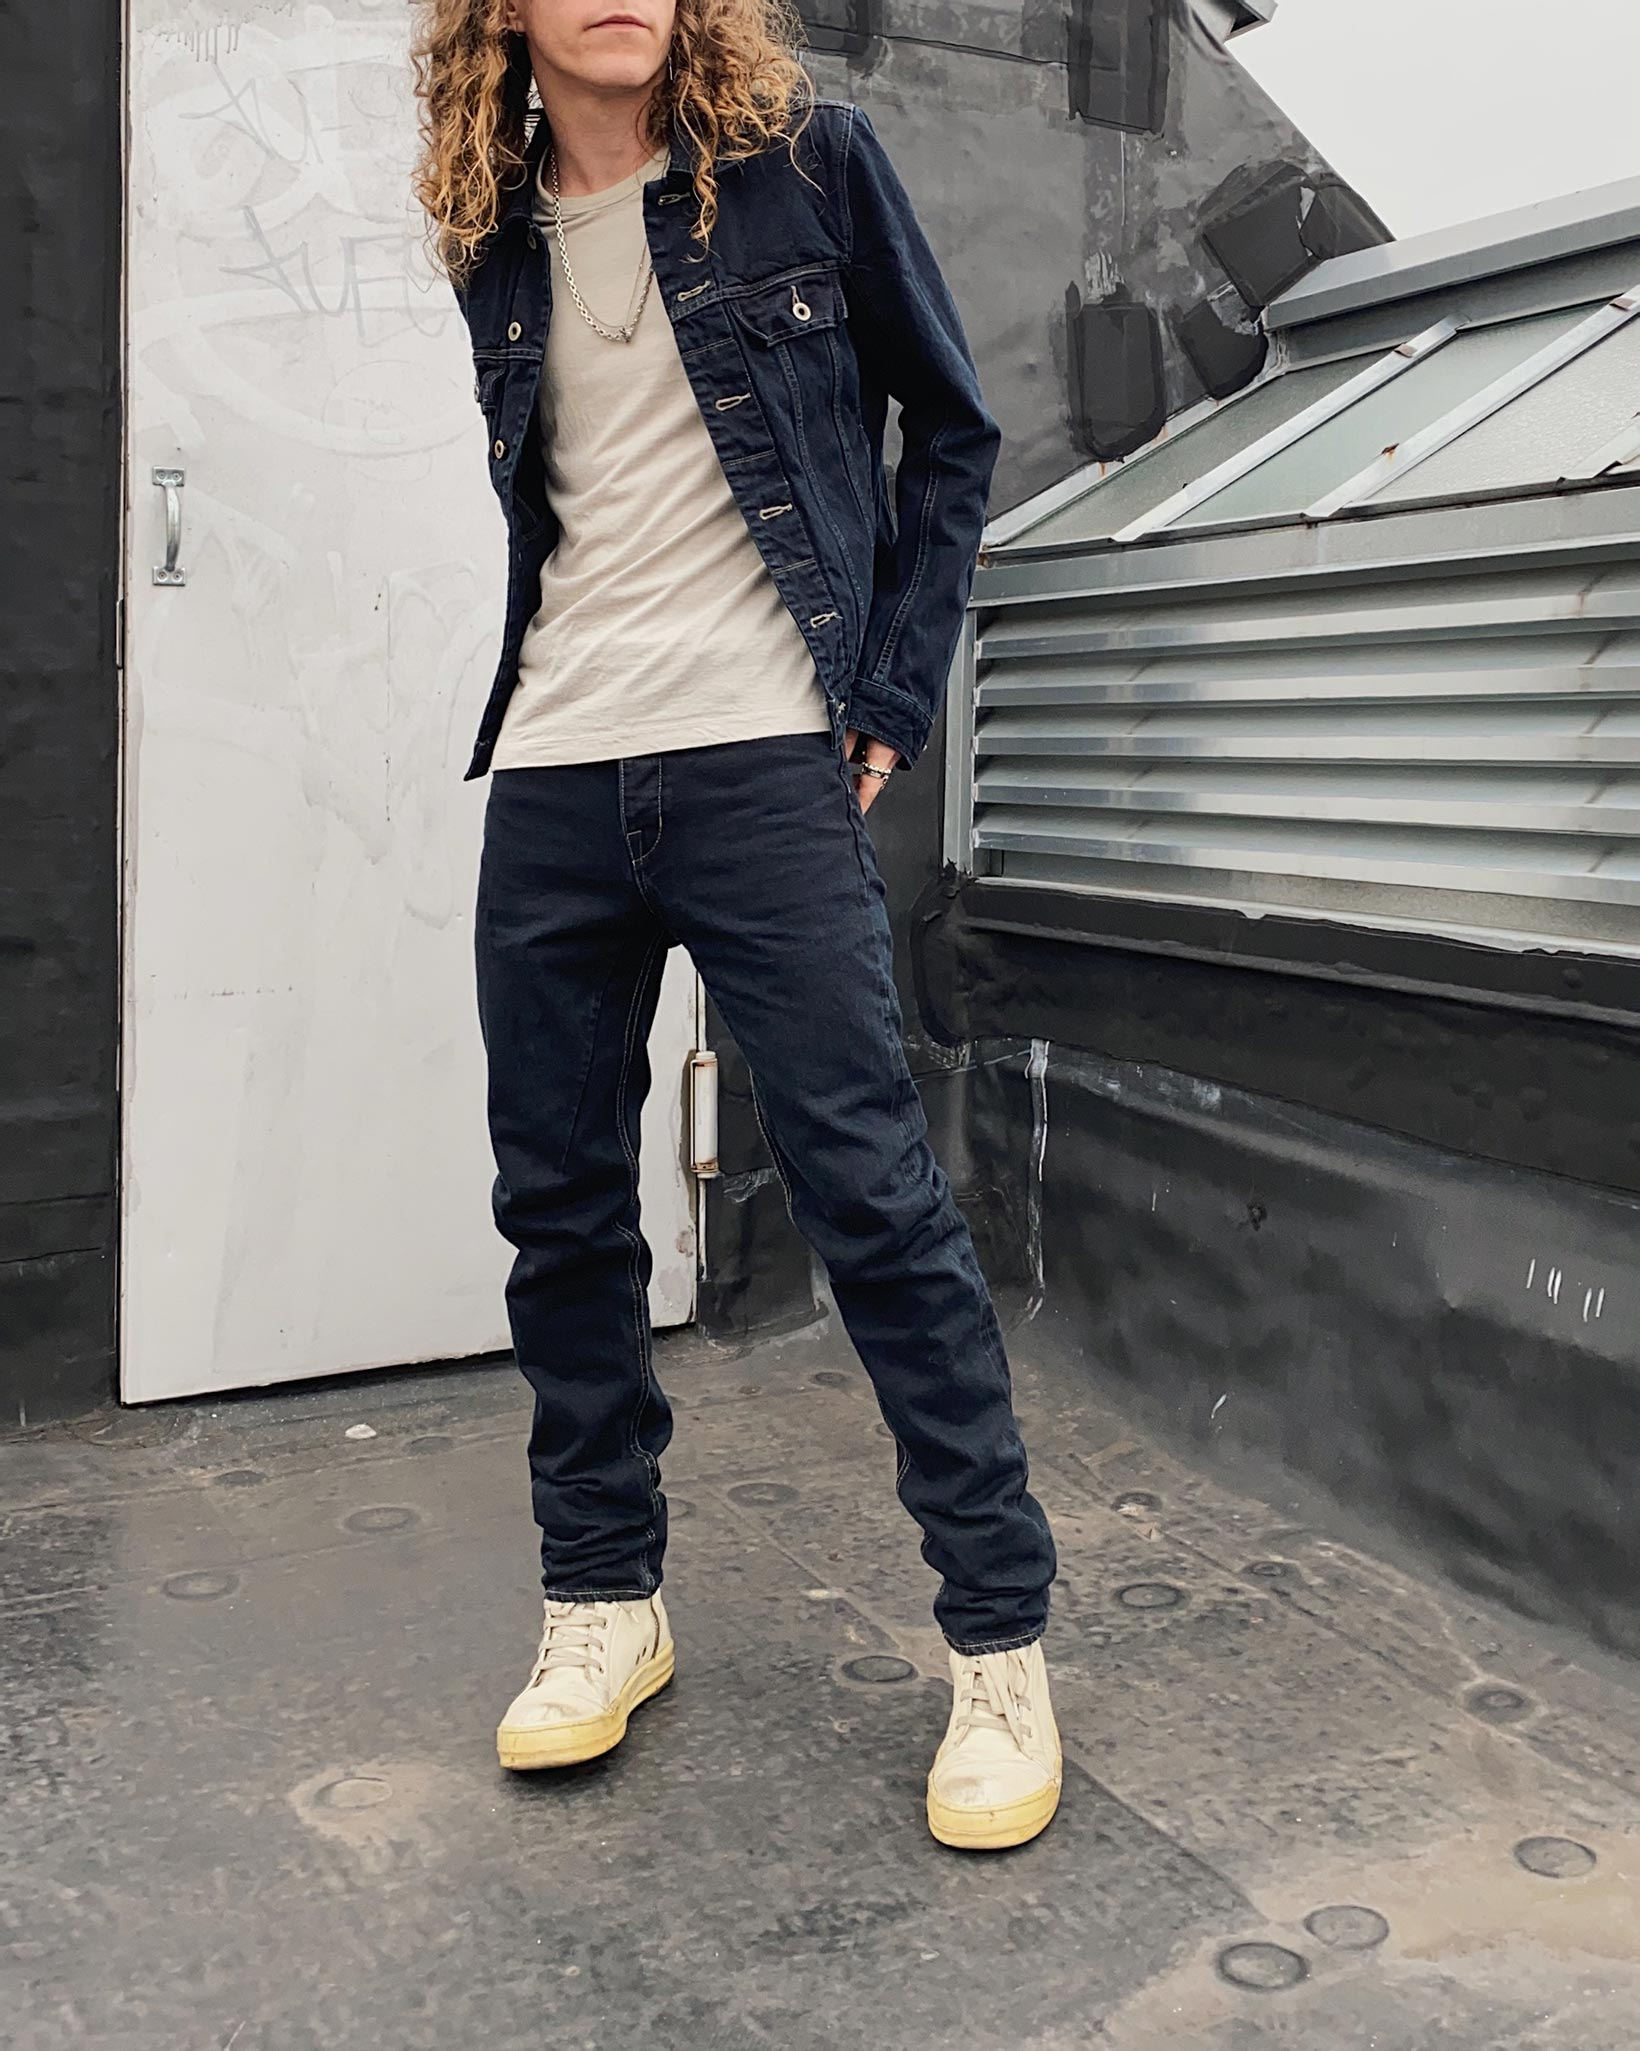 Rick Owens DRKSHDW Duke Jeans - Made in Japan Overdyed (Self Edge Exclusive) - Image 28